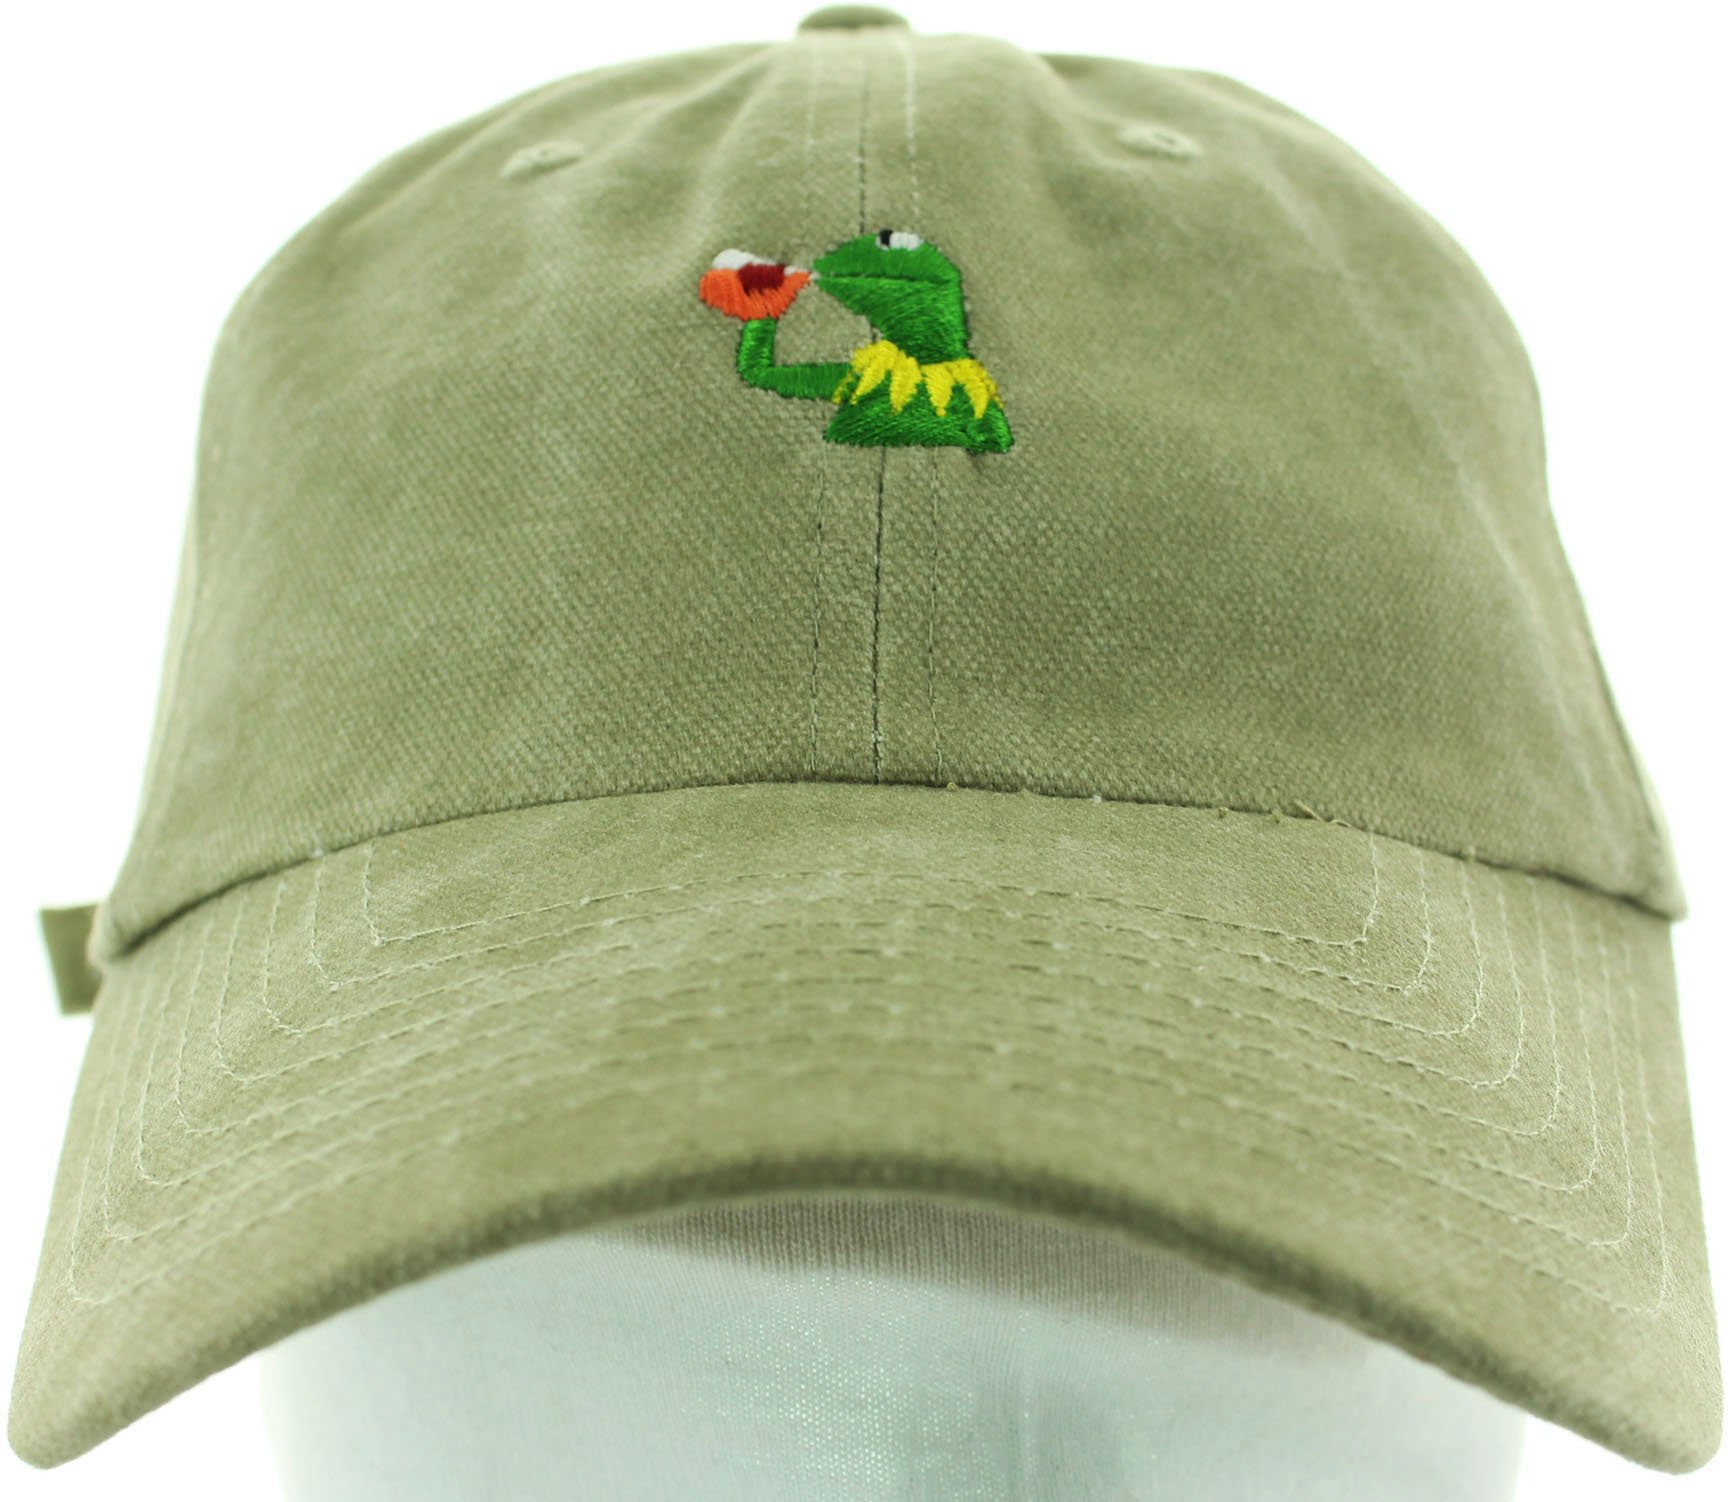 Kermit Sipping Tea None of My Business Hat Dad Cap Khaki